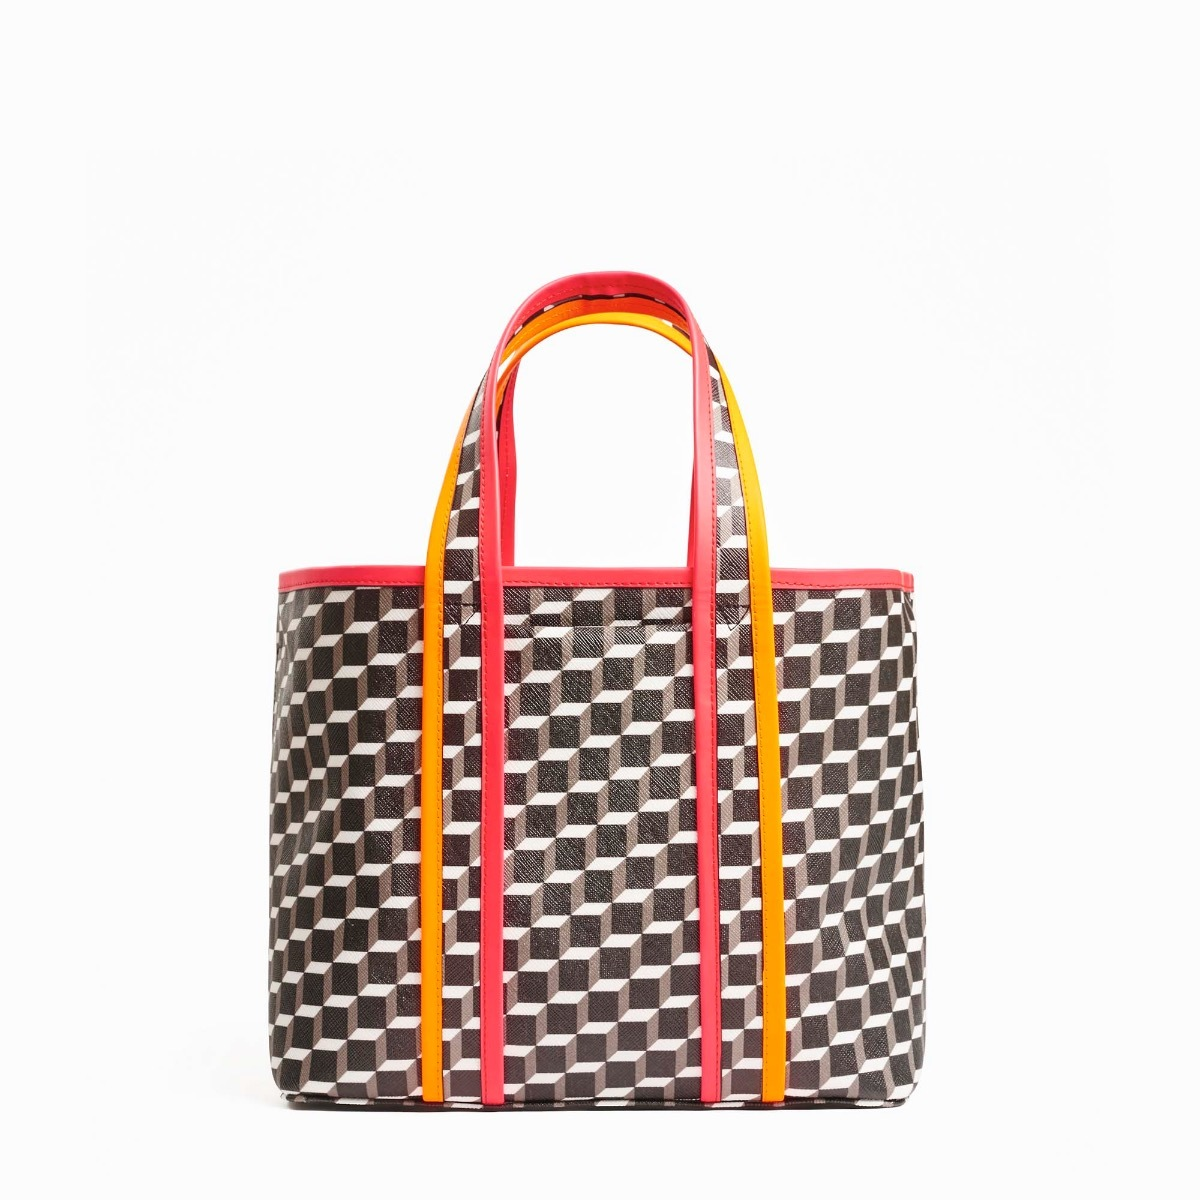 PIERRE HARDY QUBE TOTE